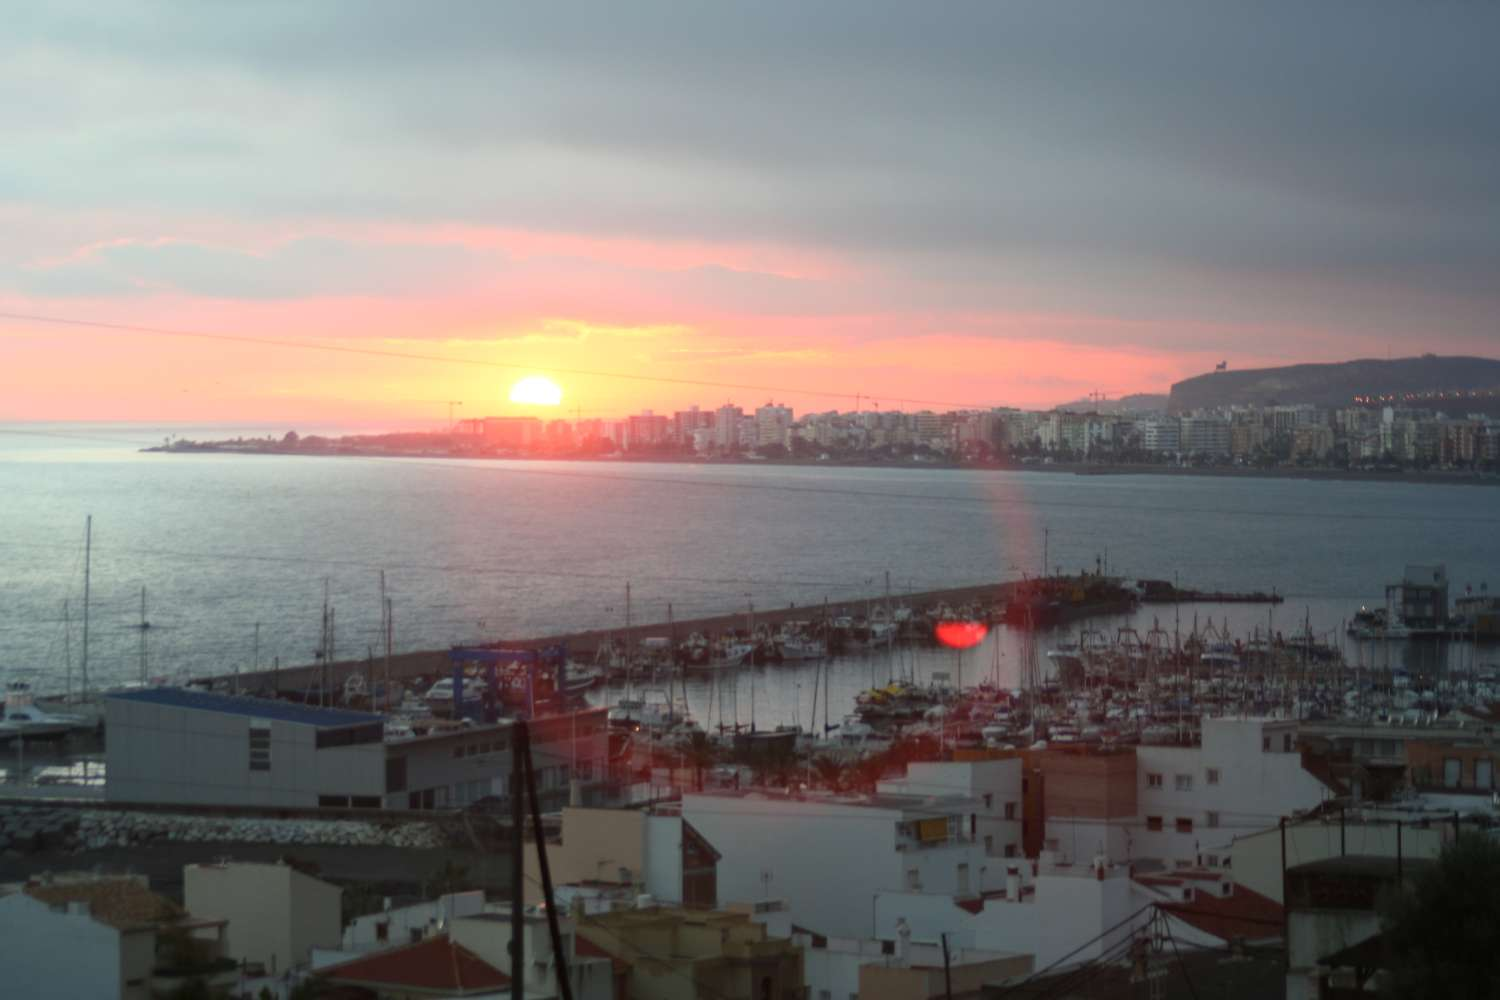 Flat for rent in Caleta de Vélez